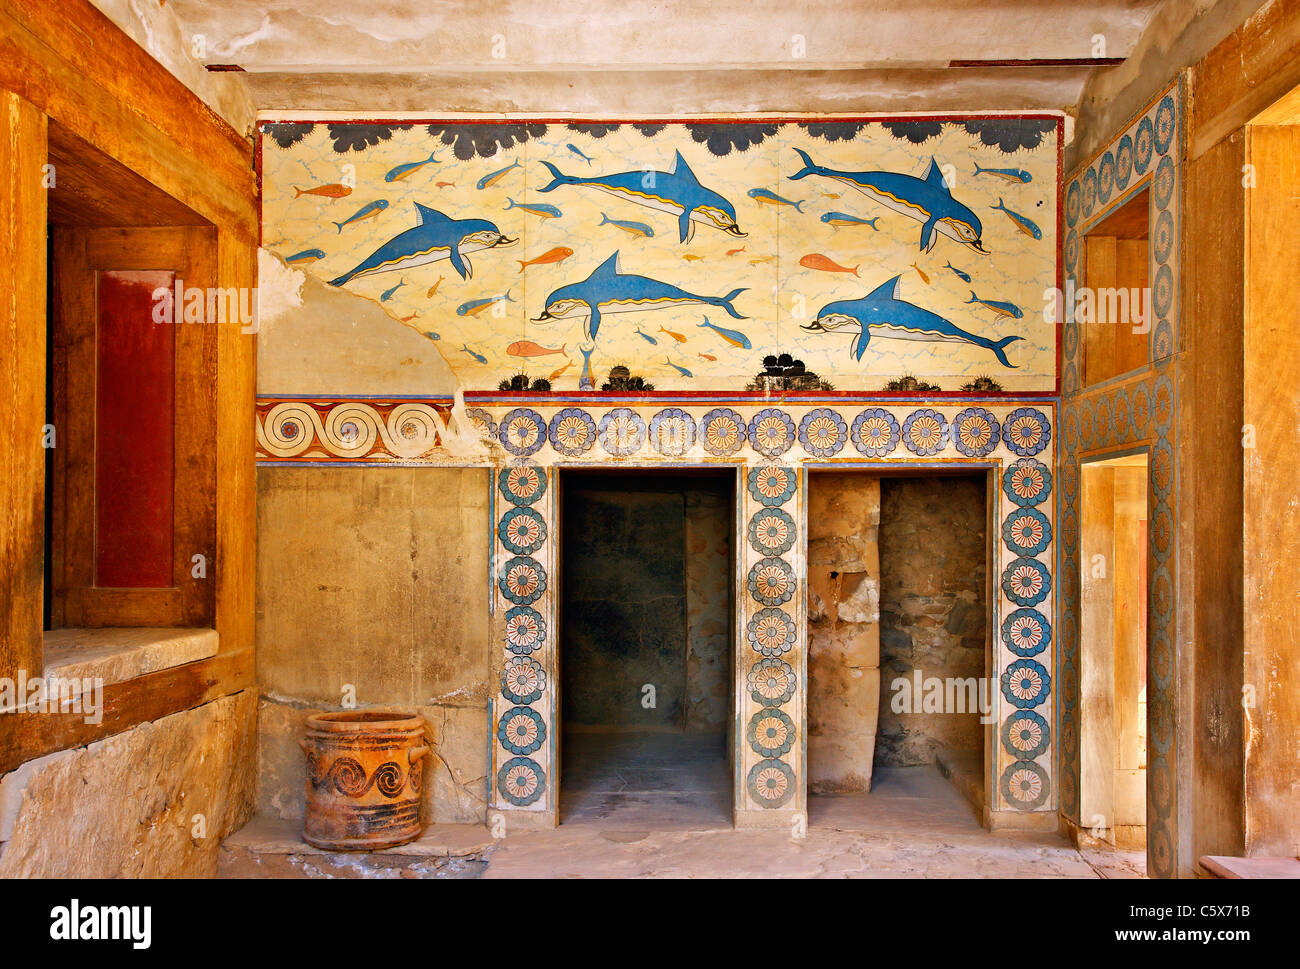 The Dolphins Fresco From The Queens Megaron At The Minoan